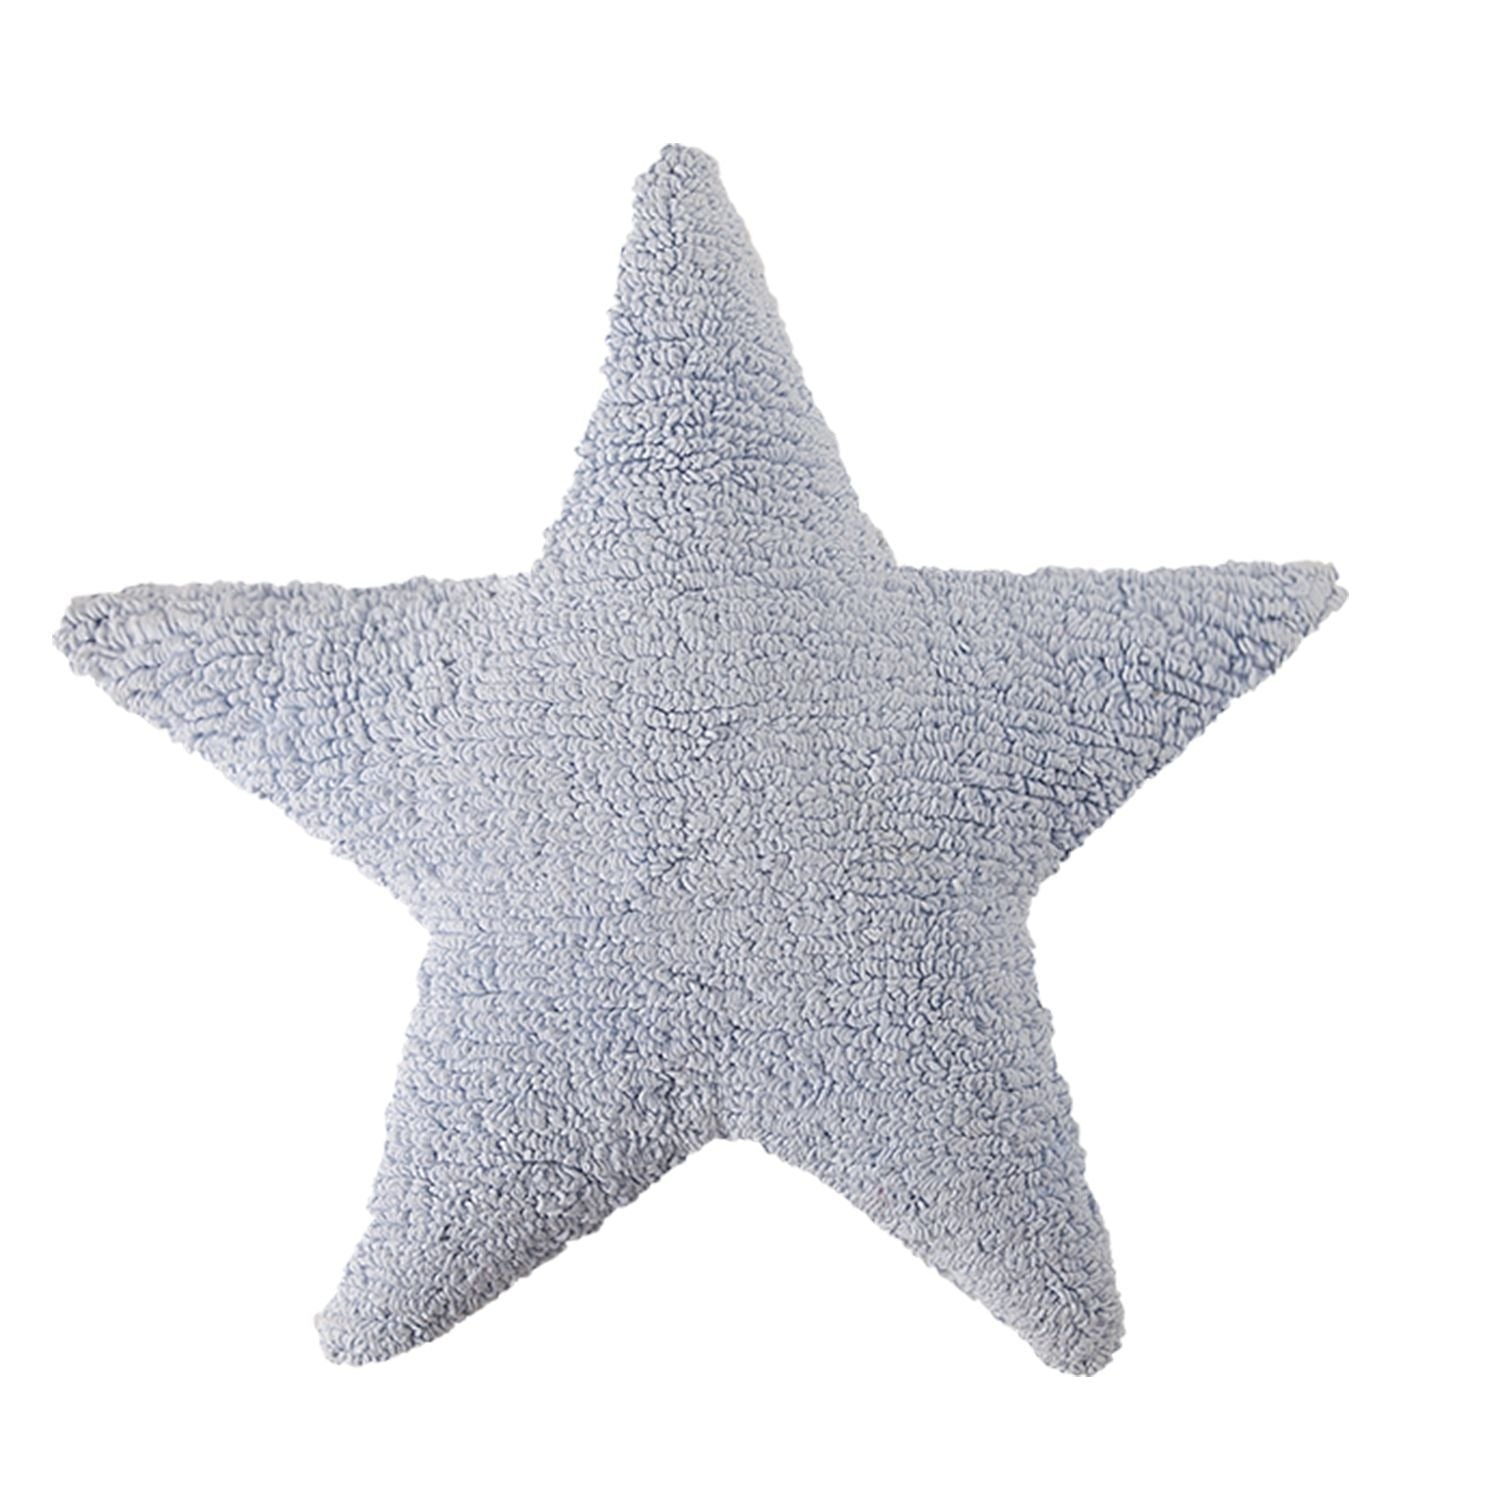 Star Cushion in Blue design by Lorena Canals